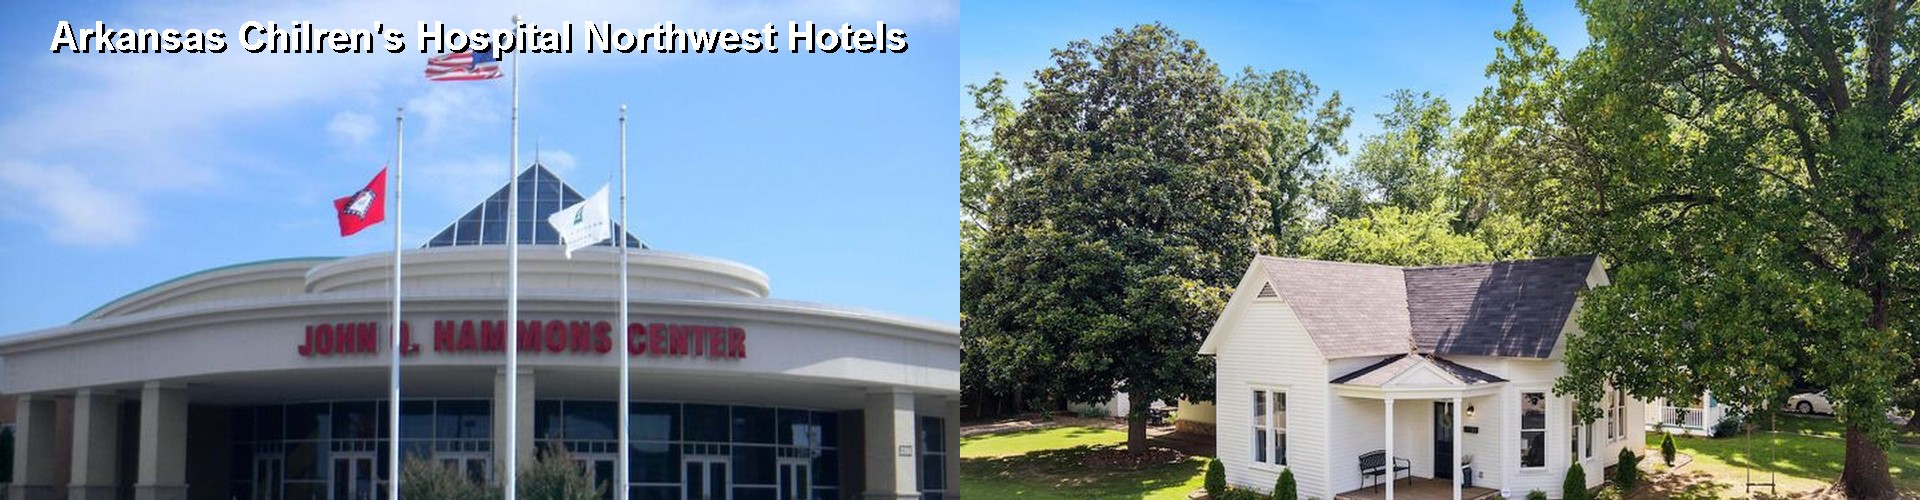 5 Best Hotels near Arkansas Chilren's Hospital Northwest